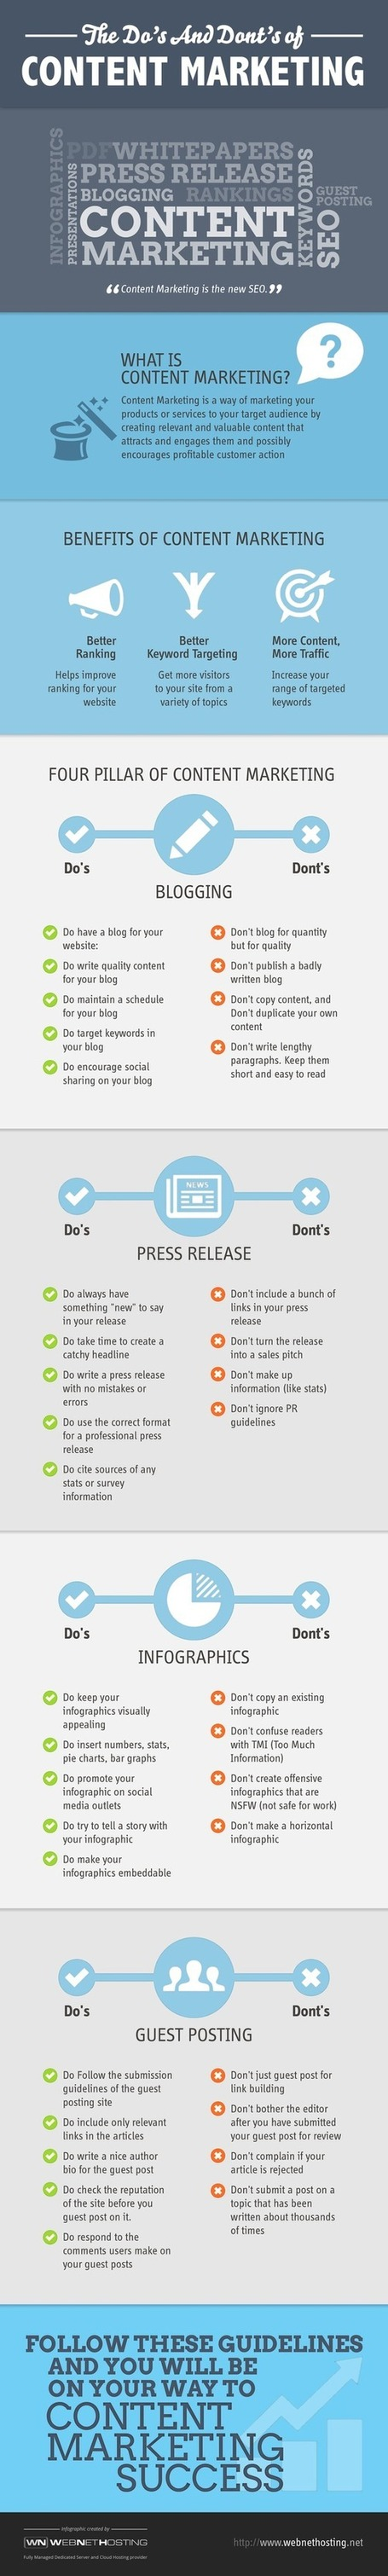 The Do's and Dont's of Content Marketing - Infographic | Attraction Marketing Client Magnet | Scoop.it